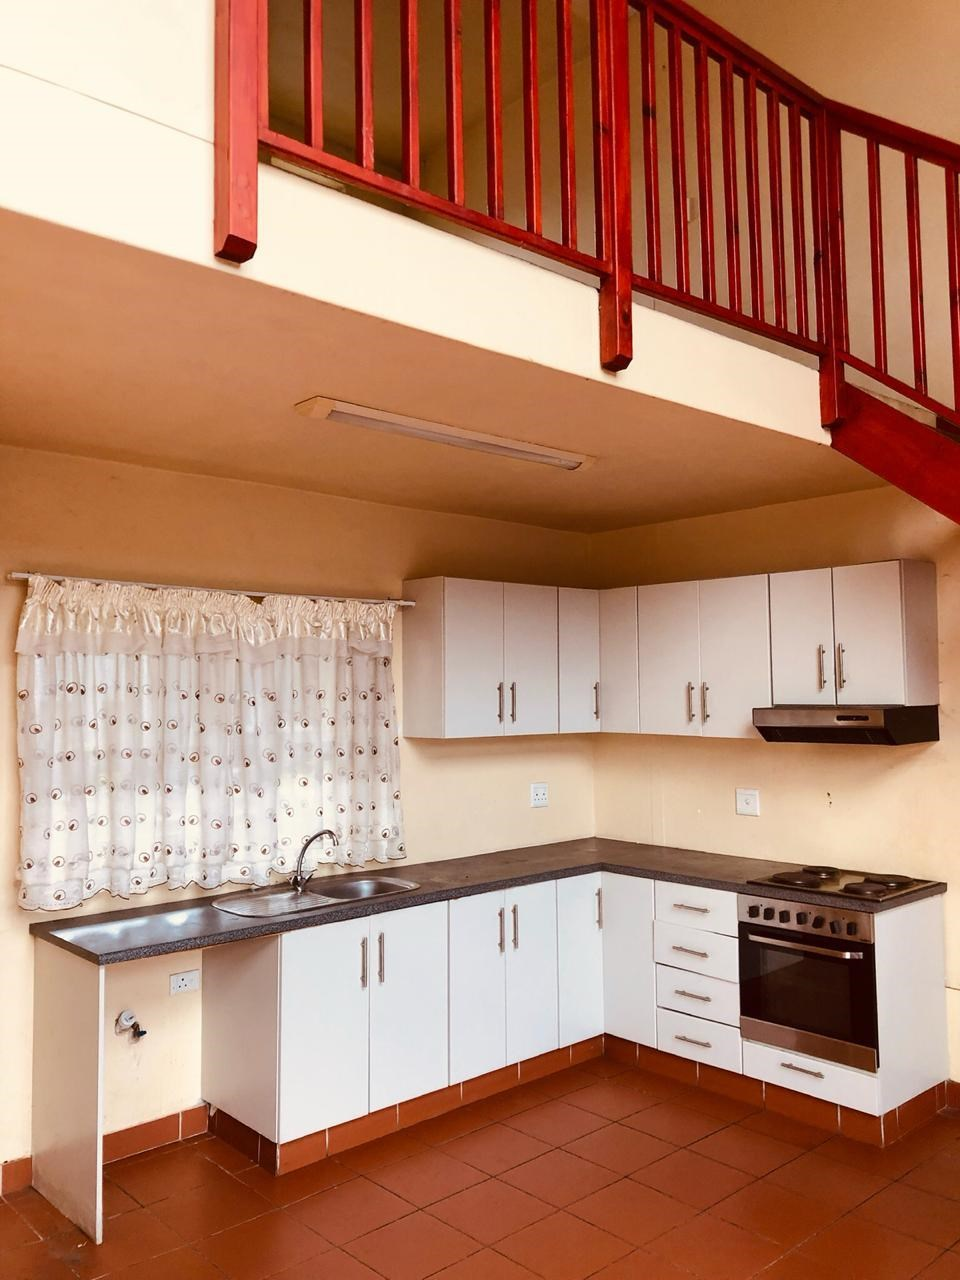 1 Bedroom Apartment for Sale in Bulwer